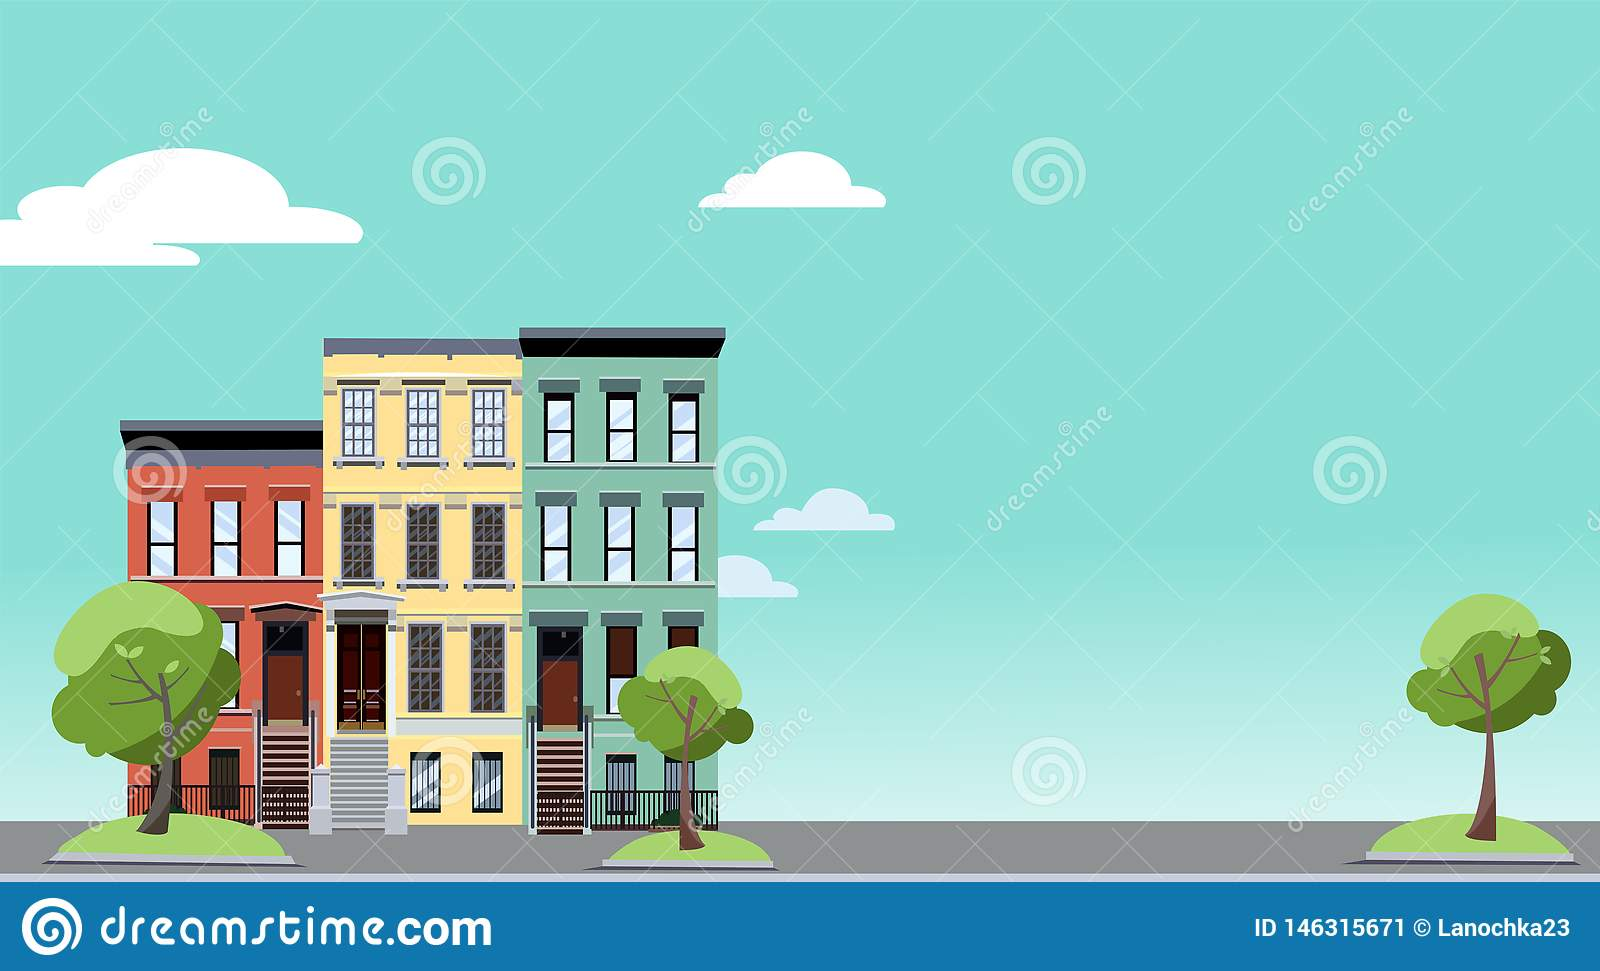 Summer in the city. Horizontal background with colorful cityscape with cozy green trees near two-storied houses. Banner with free